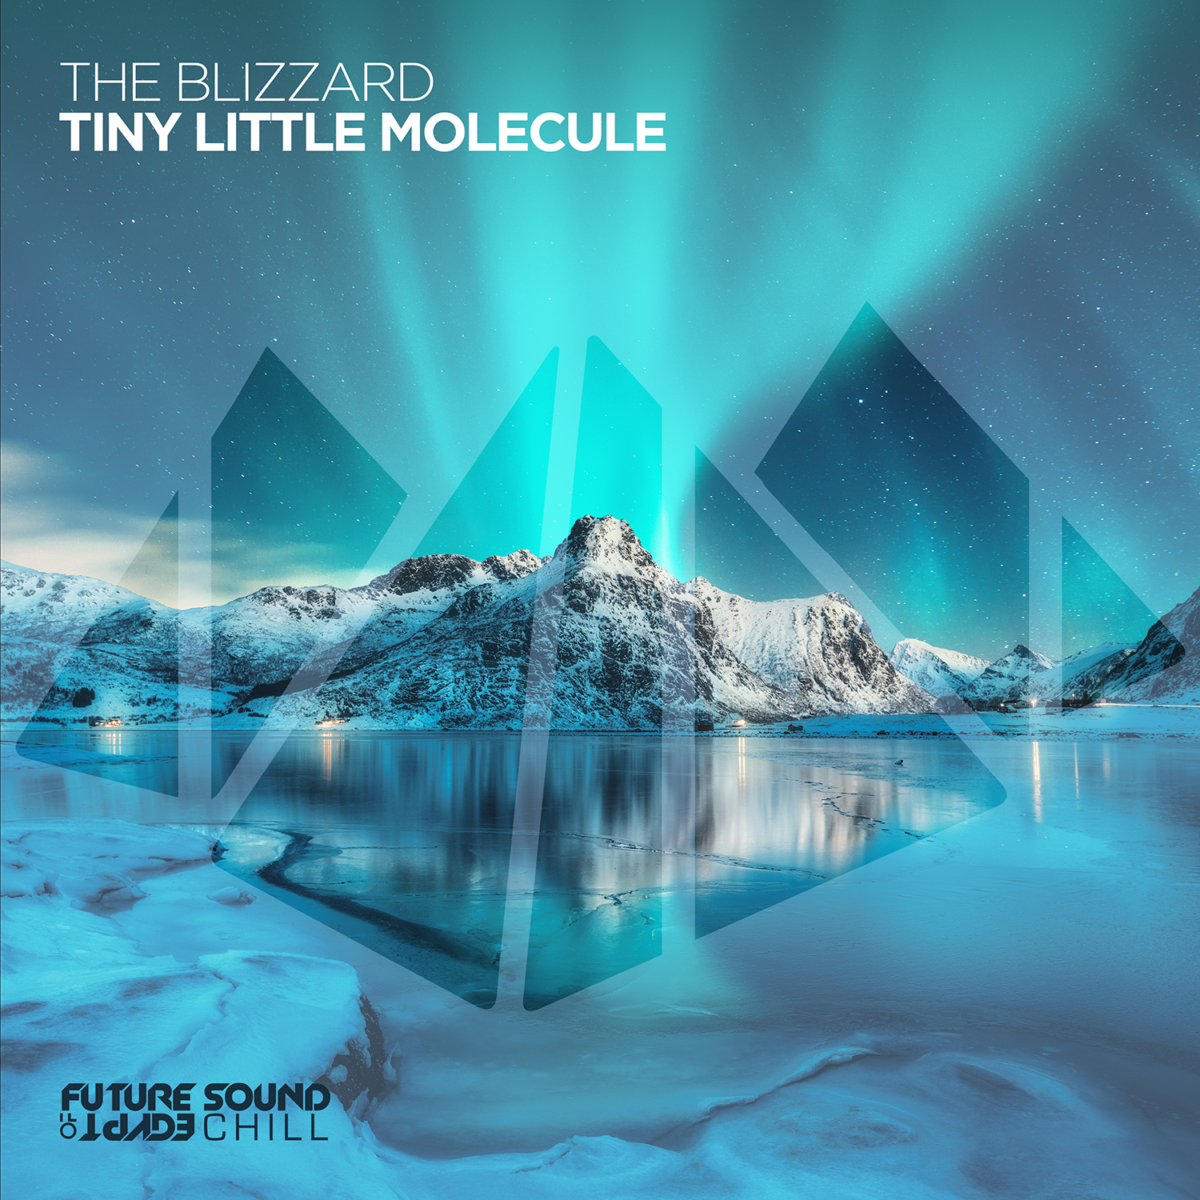 The Blizzard - Tiny Little Molecule on FSOE Chill